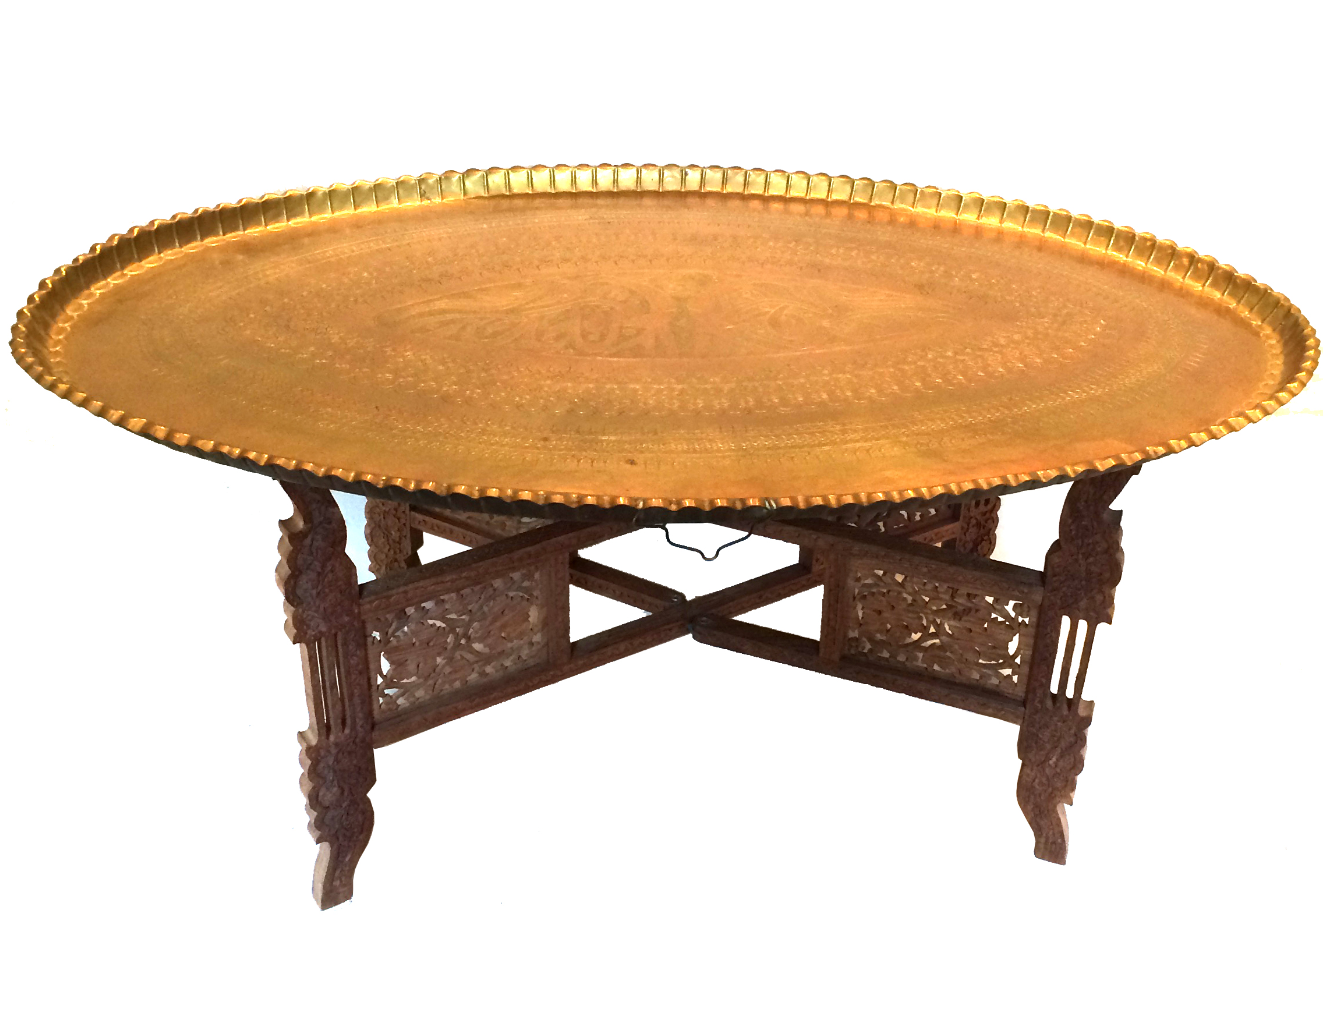 Merveilleux Vintage Moroccan Brass Tray Table With Stand   Image 1 Of 9